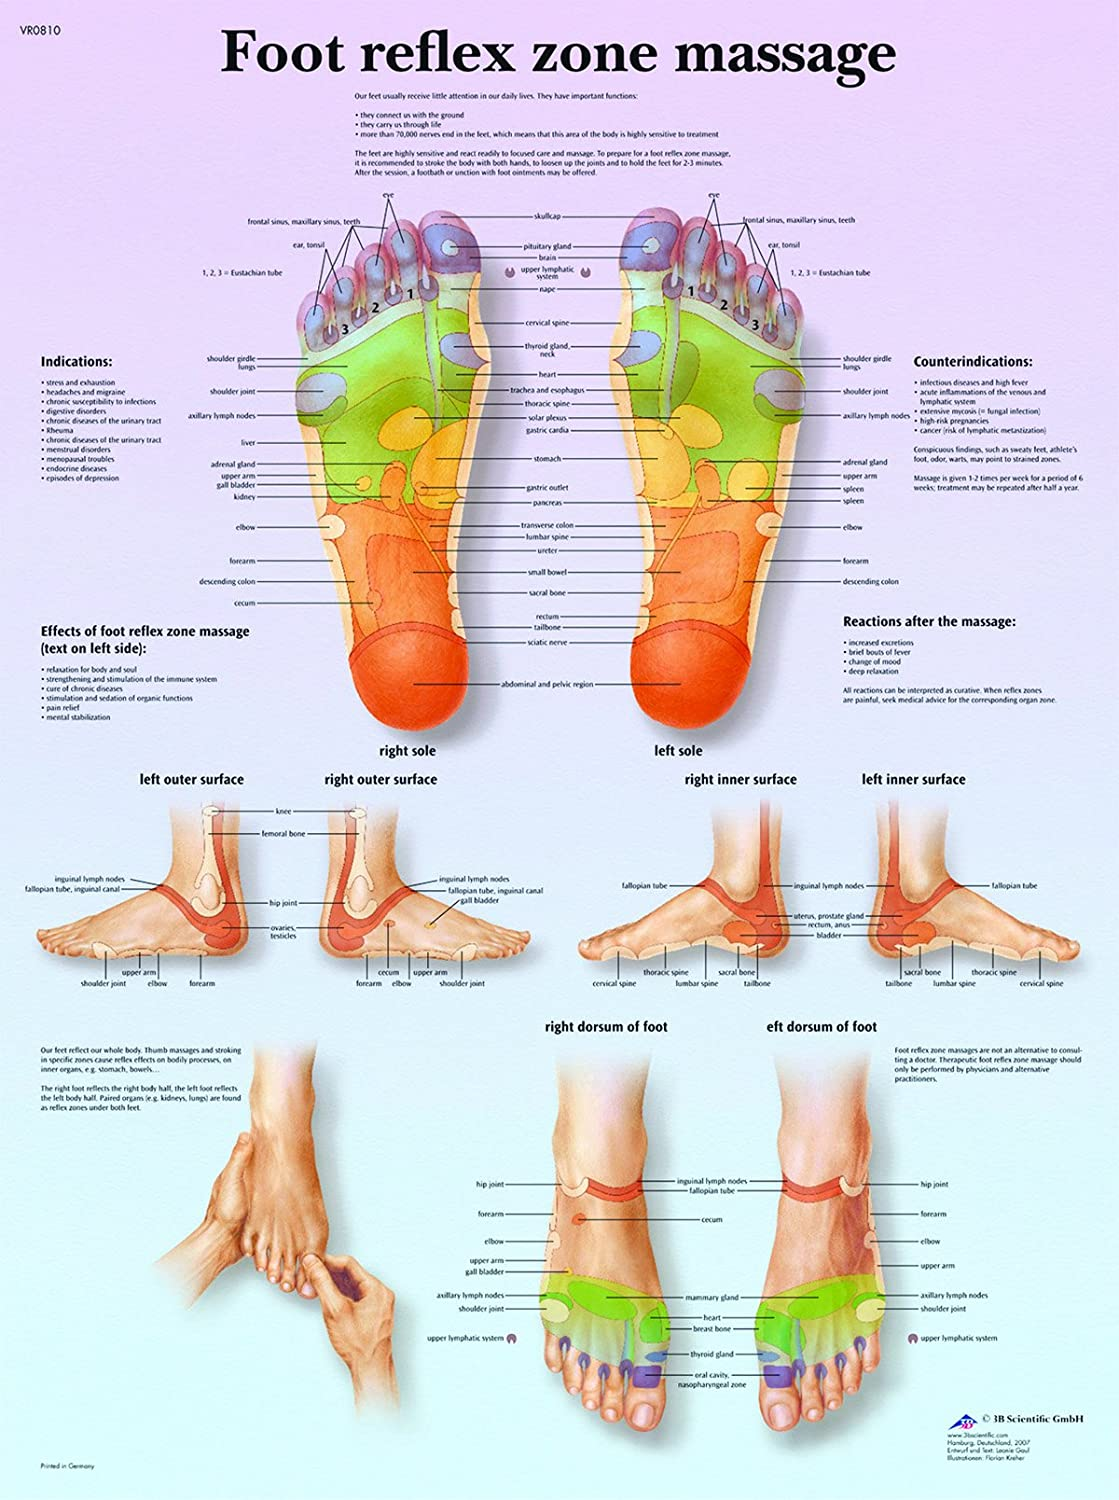 Amazon.com: Laminated Anatomical Charts - Foot Mage ... on foot odor, foot index, foot and ankle, foot pain, foot structure, foot schematic, foot problems, foot regions, foot type chart, foot outline, foot assessment form, foot tendons, foot cartoon, arches of the foot, joints of foot, foot parts, anatomical terms of location, foot muscles, foot side view, foot map, foot bones, foot drawing, fifth toe, foot toes,